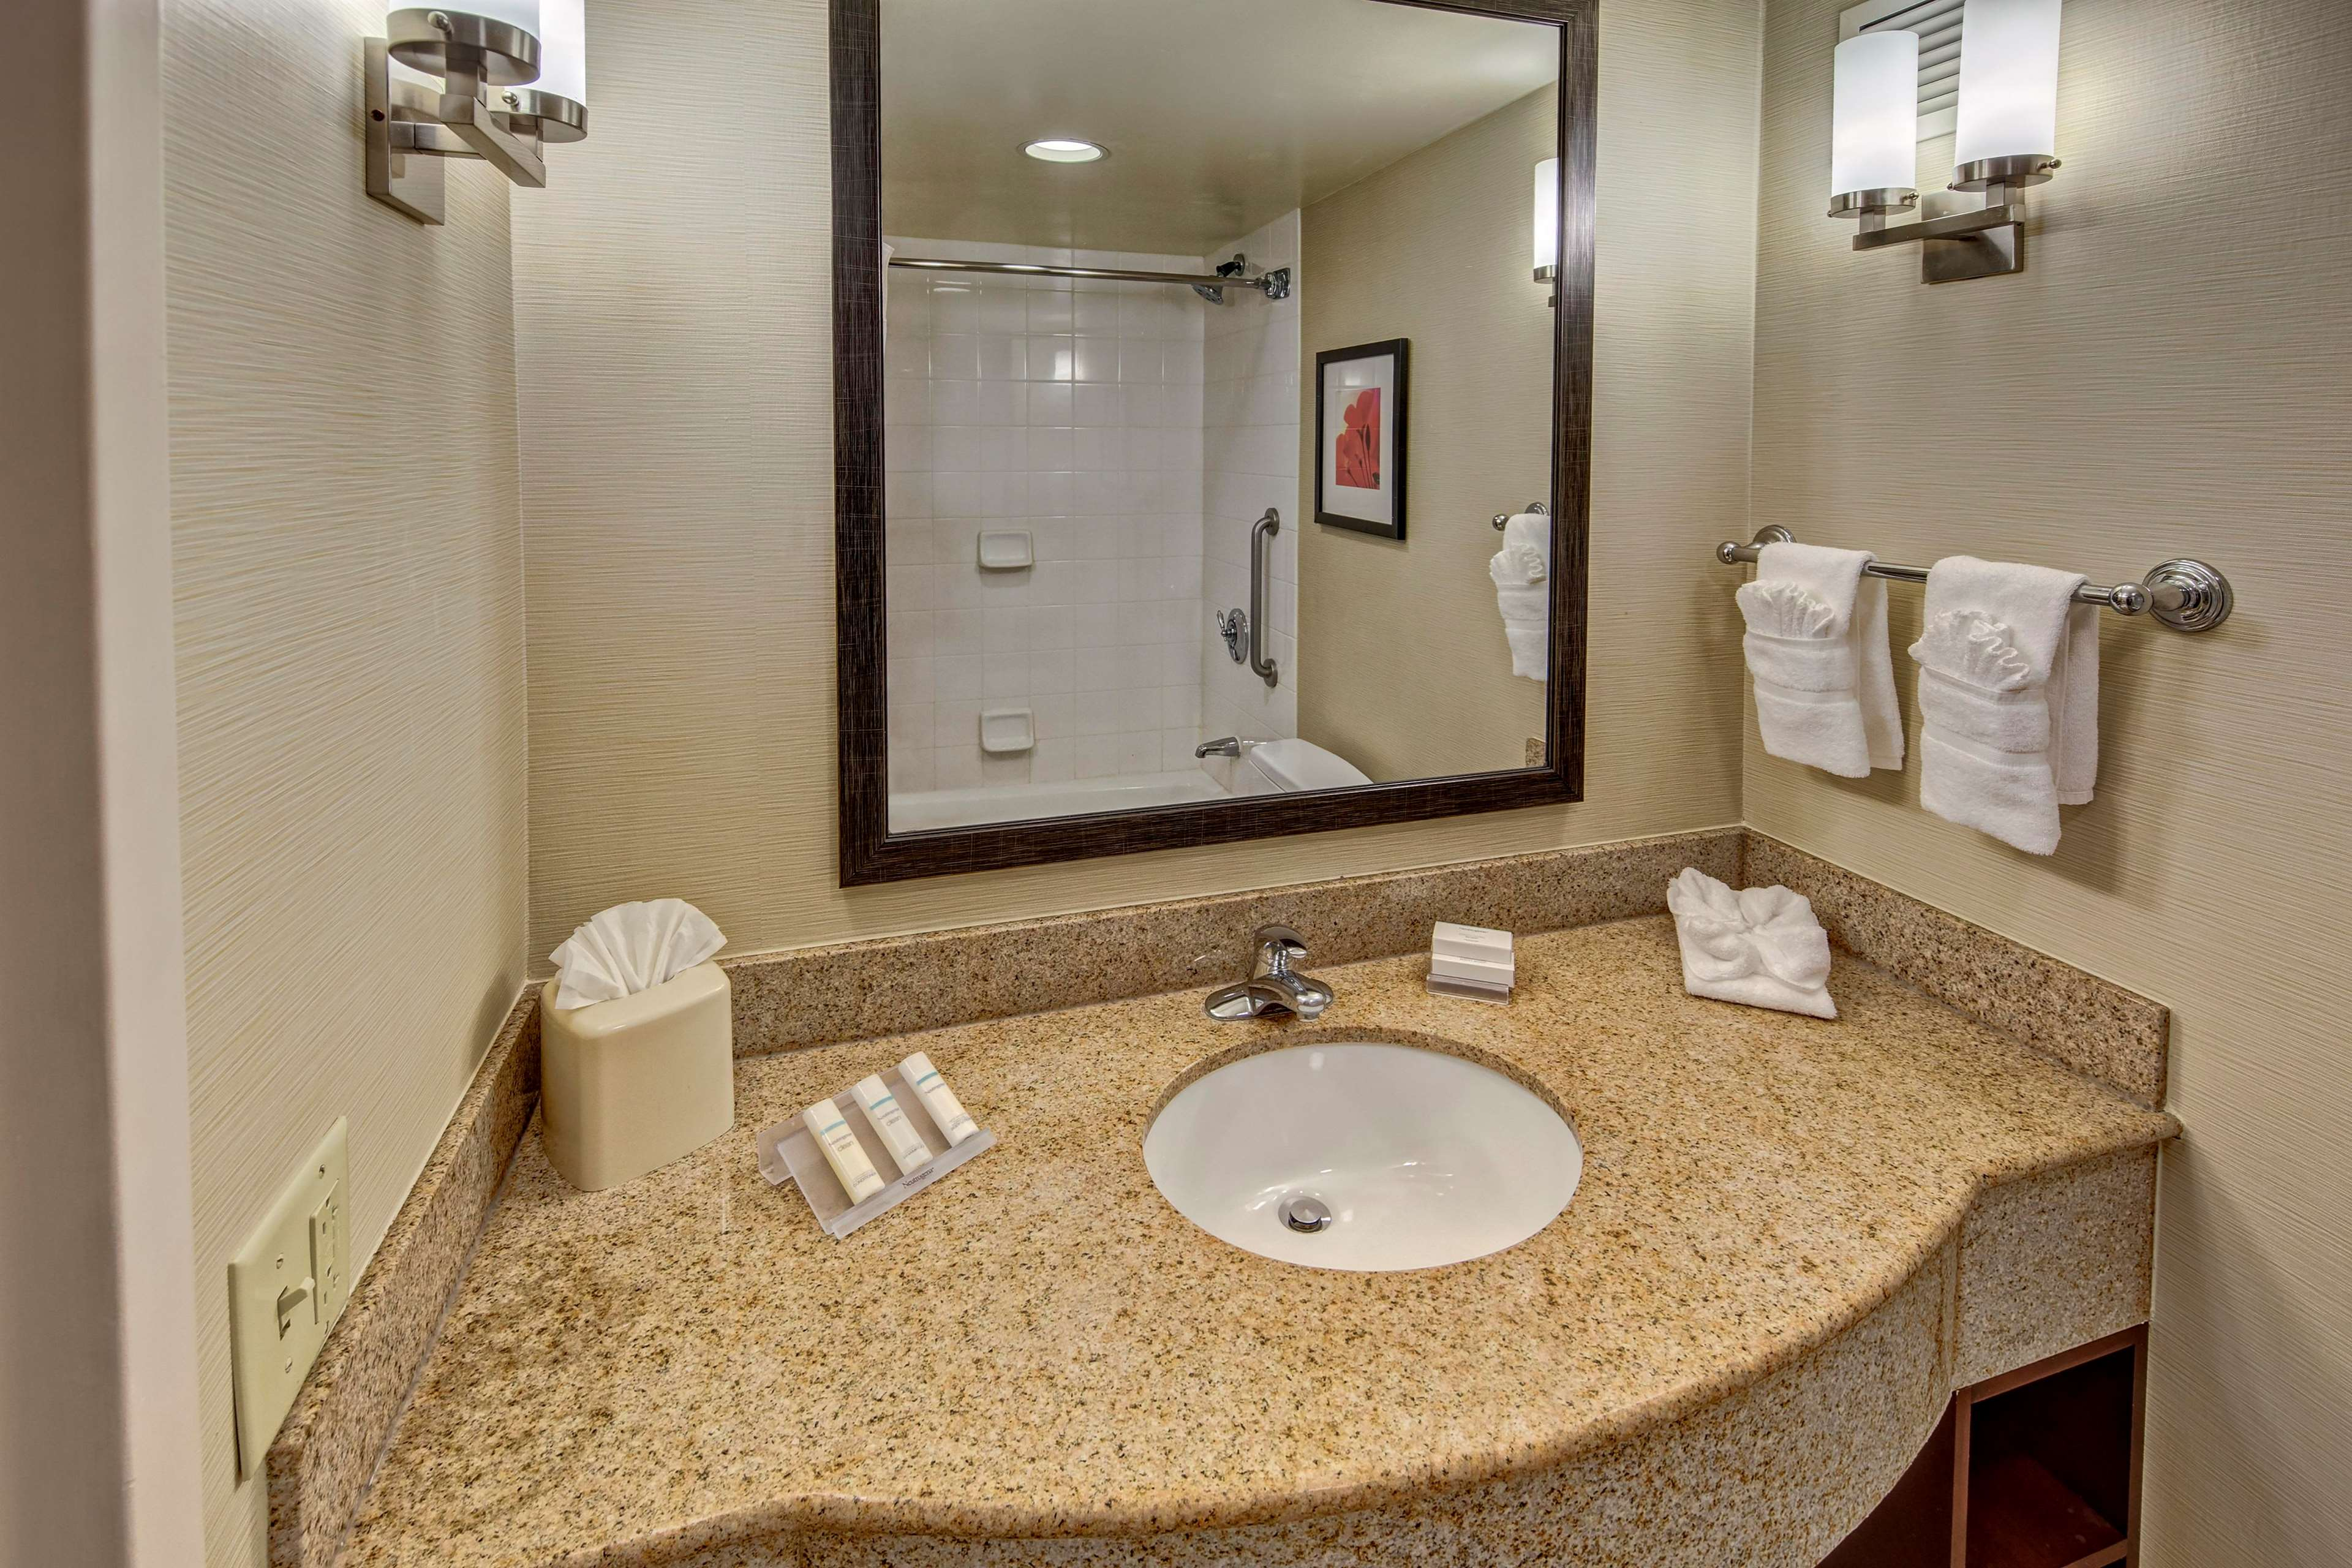 Hilton Garden Inn Houston/Bush Intercontinental Airport image 15